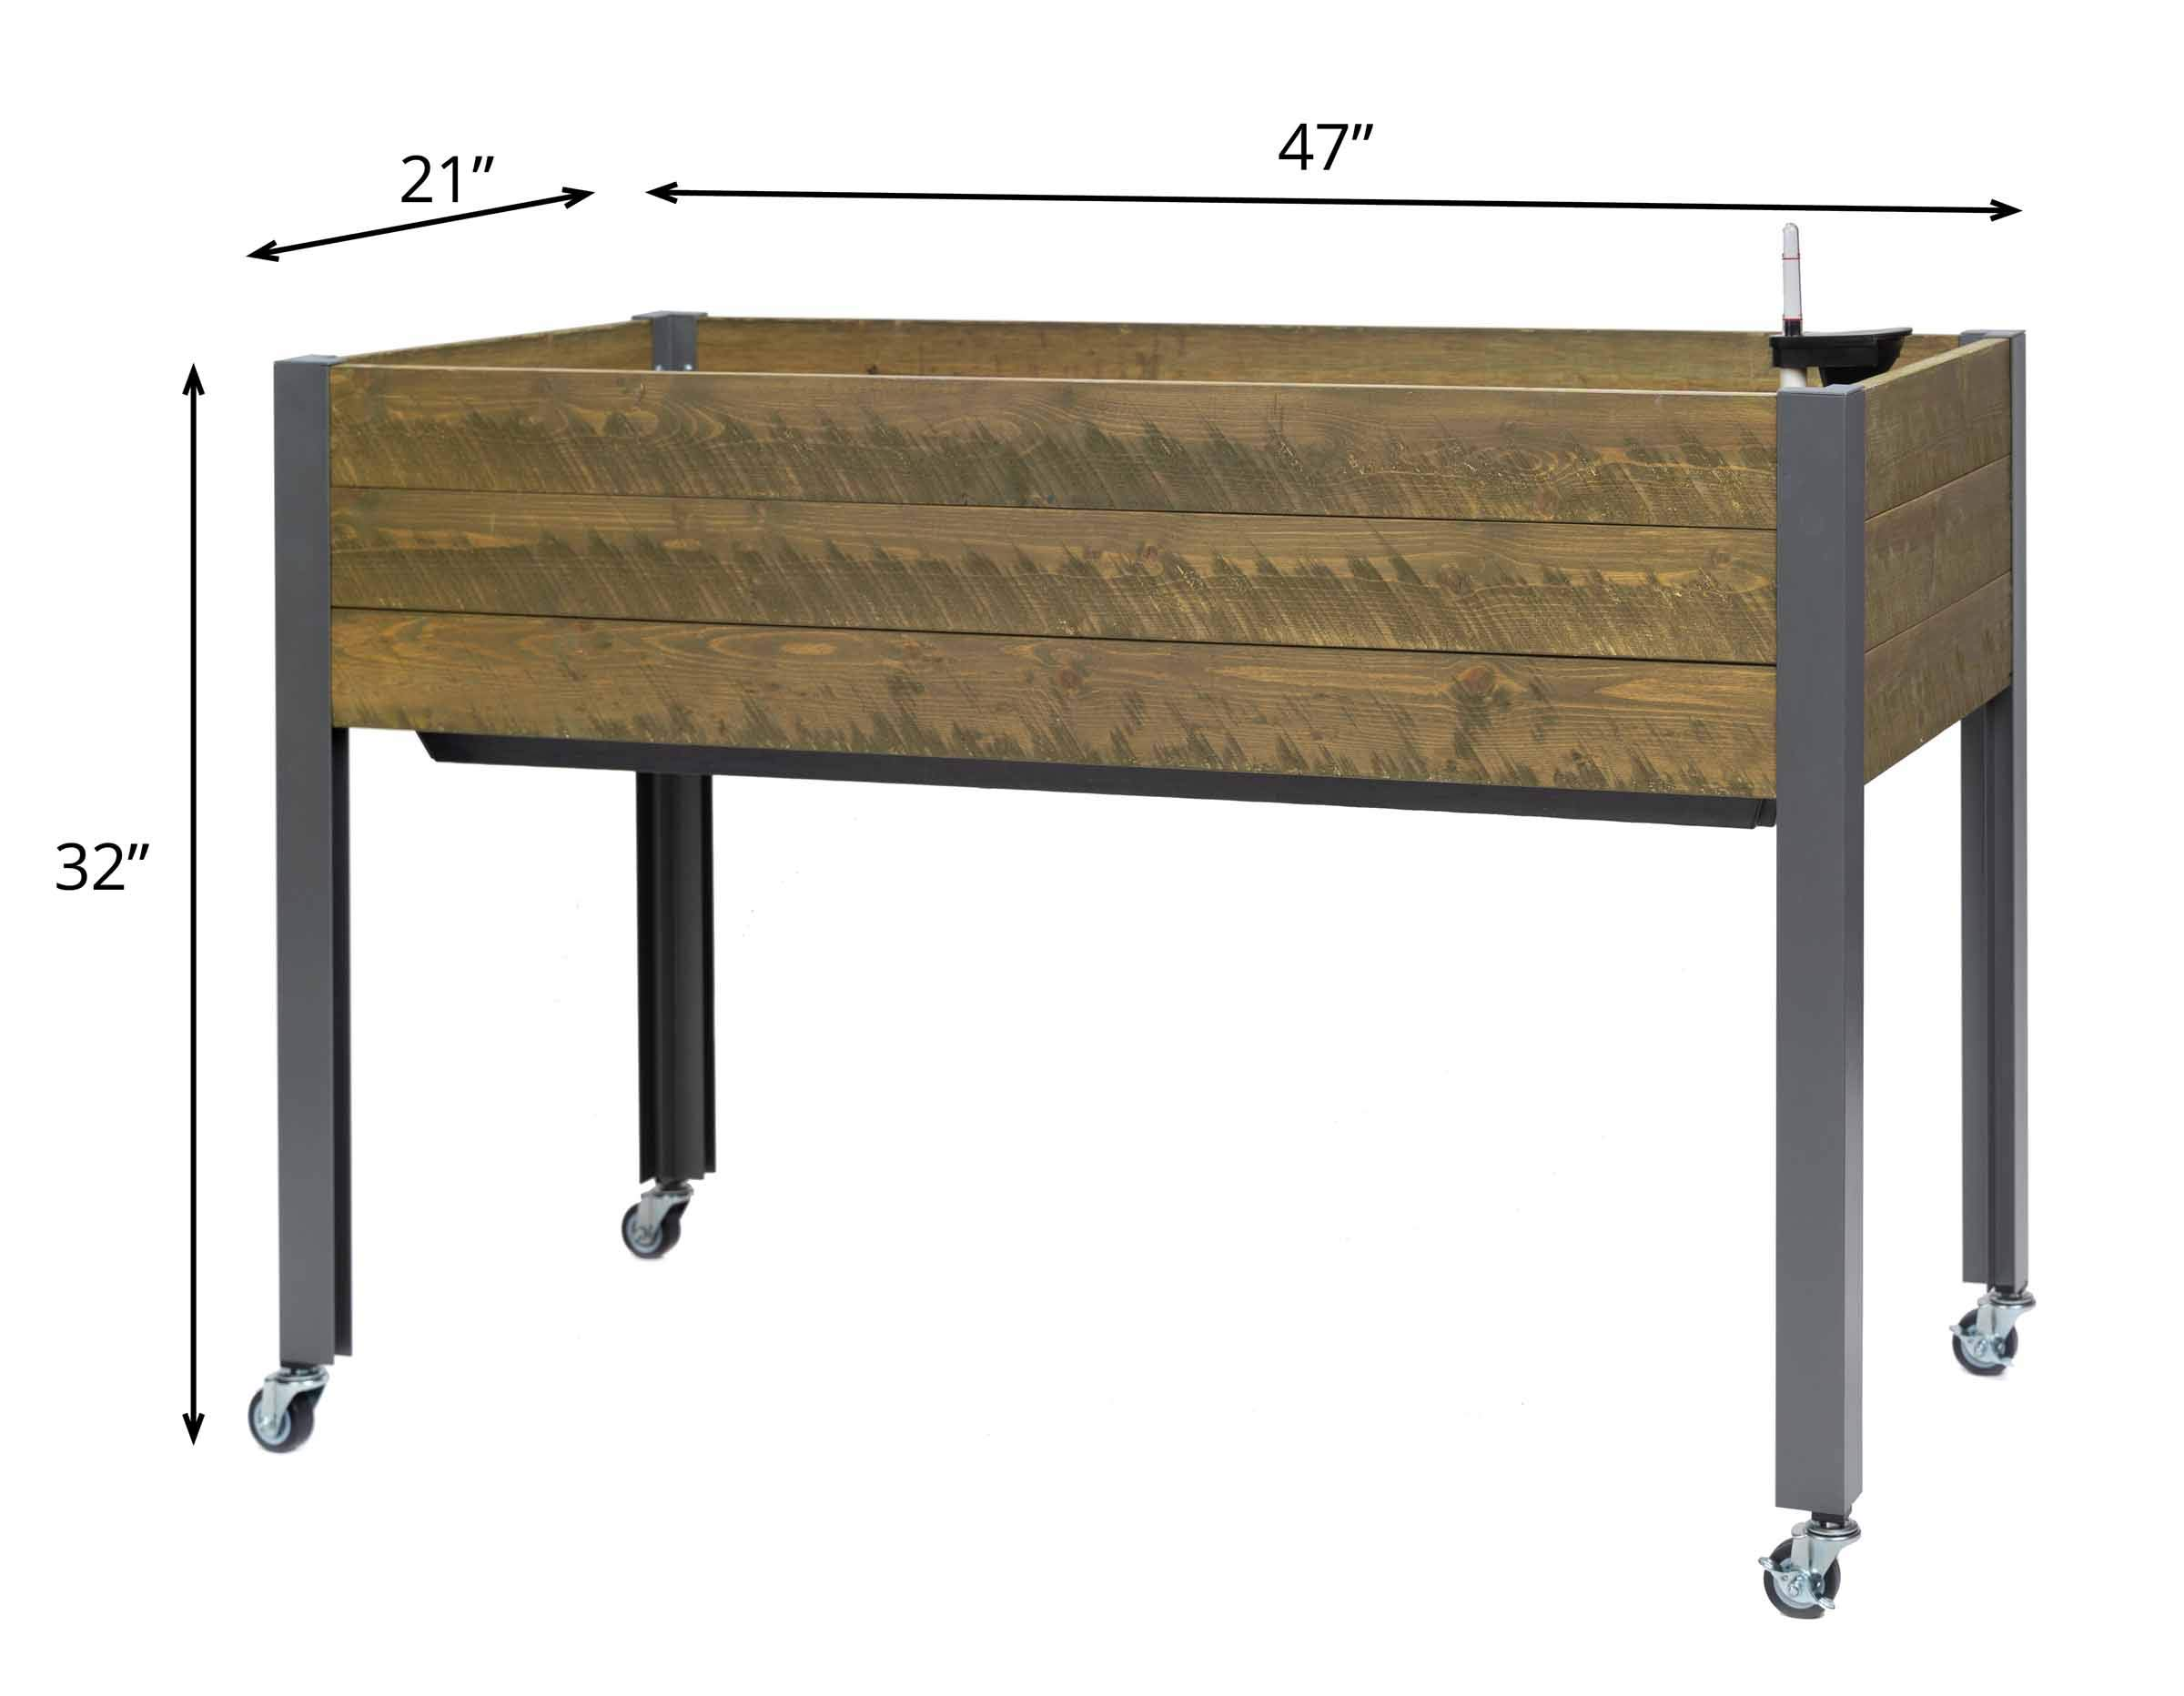 CedarCraft Self-Watering Elevated Spruce Planter (21'' x 47'' x 32''H) - The Flexibility of Container Gardening + The Convenience of a self-Watering System. Grow Healthier, More Productive Plants. by CedarCraft (Image #3)